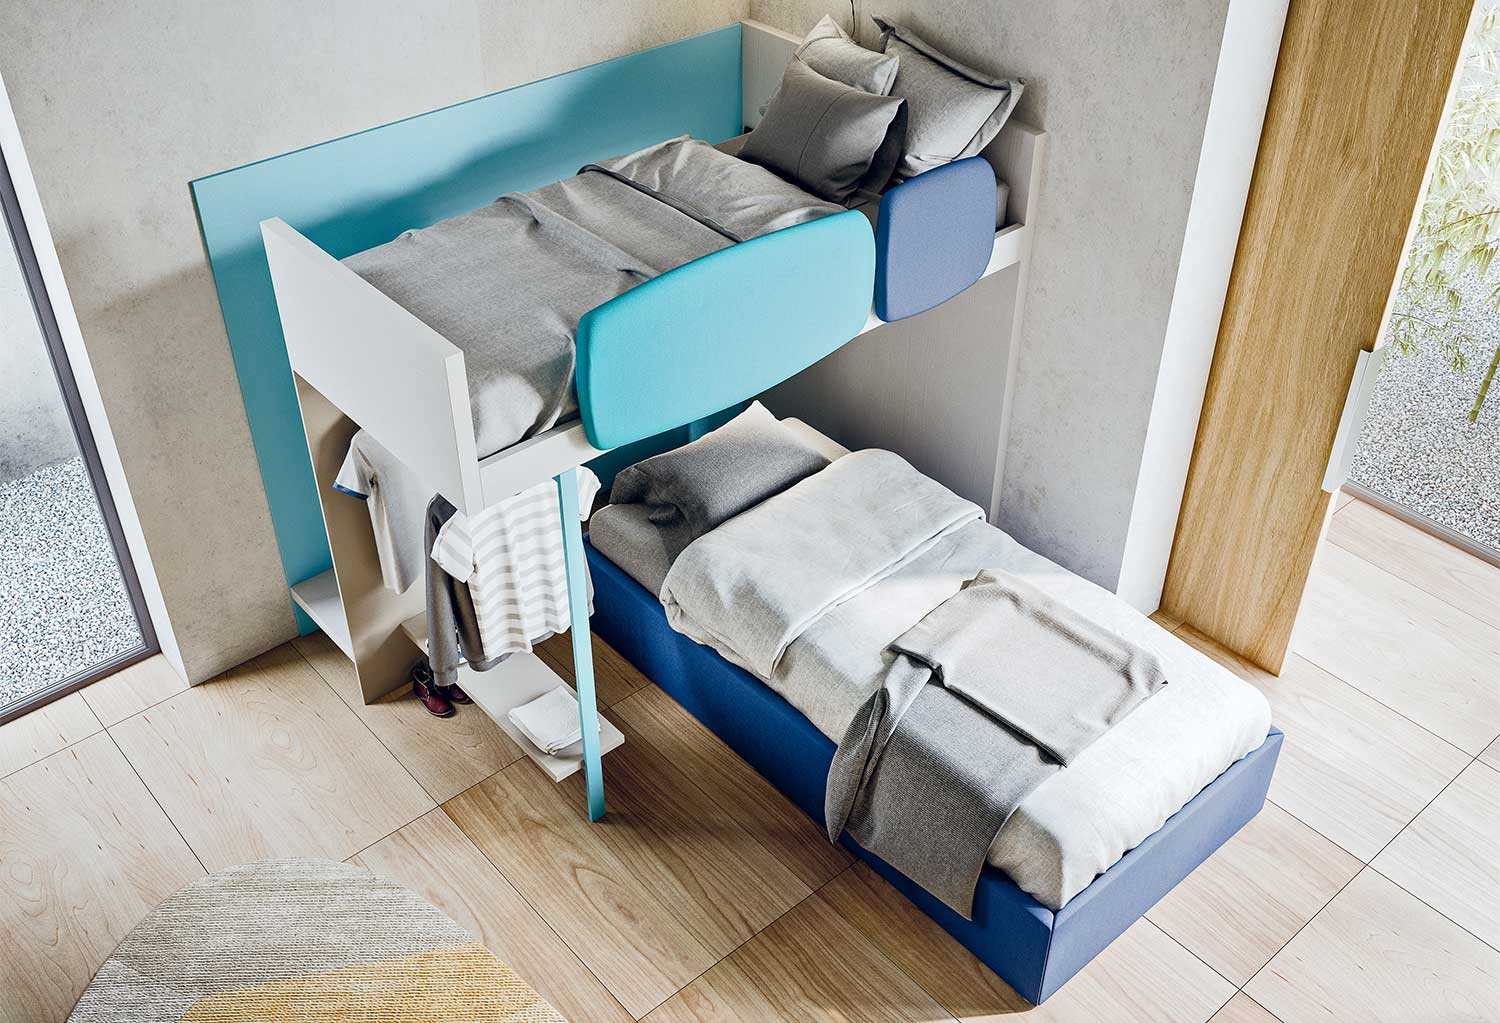 Corner bunk bed: the low bed is separated from the high sleeper and can be placed in many ways